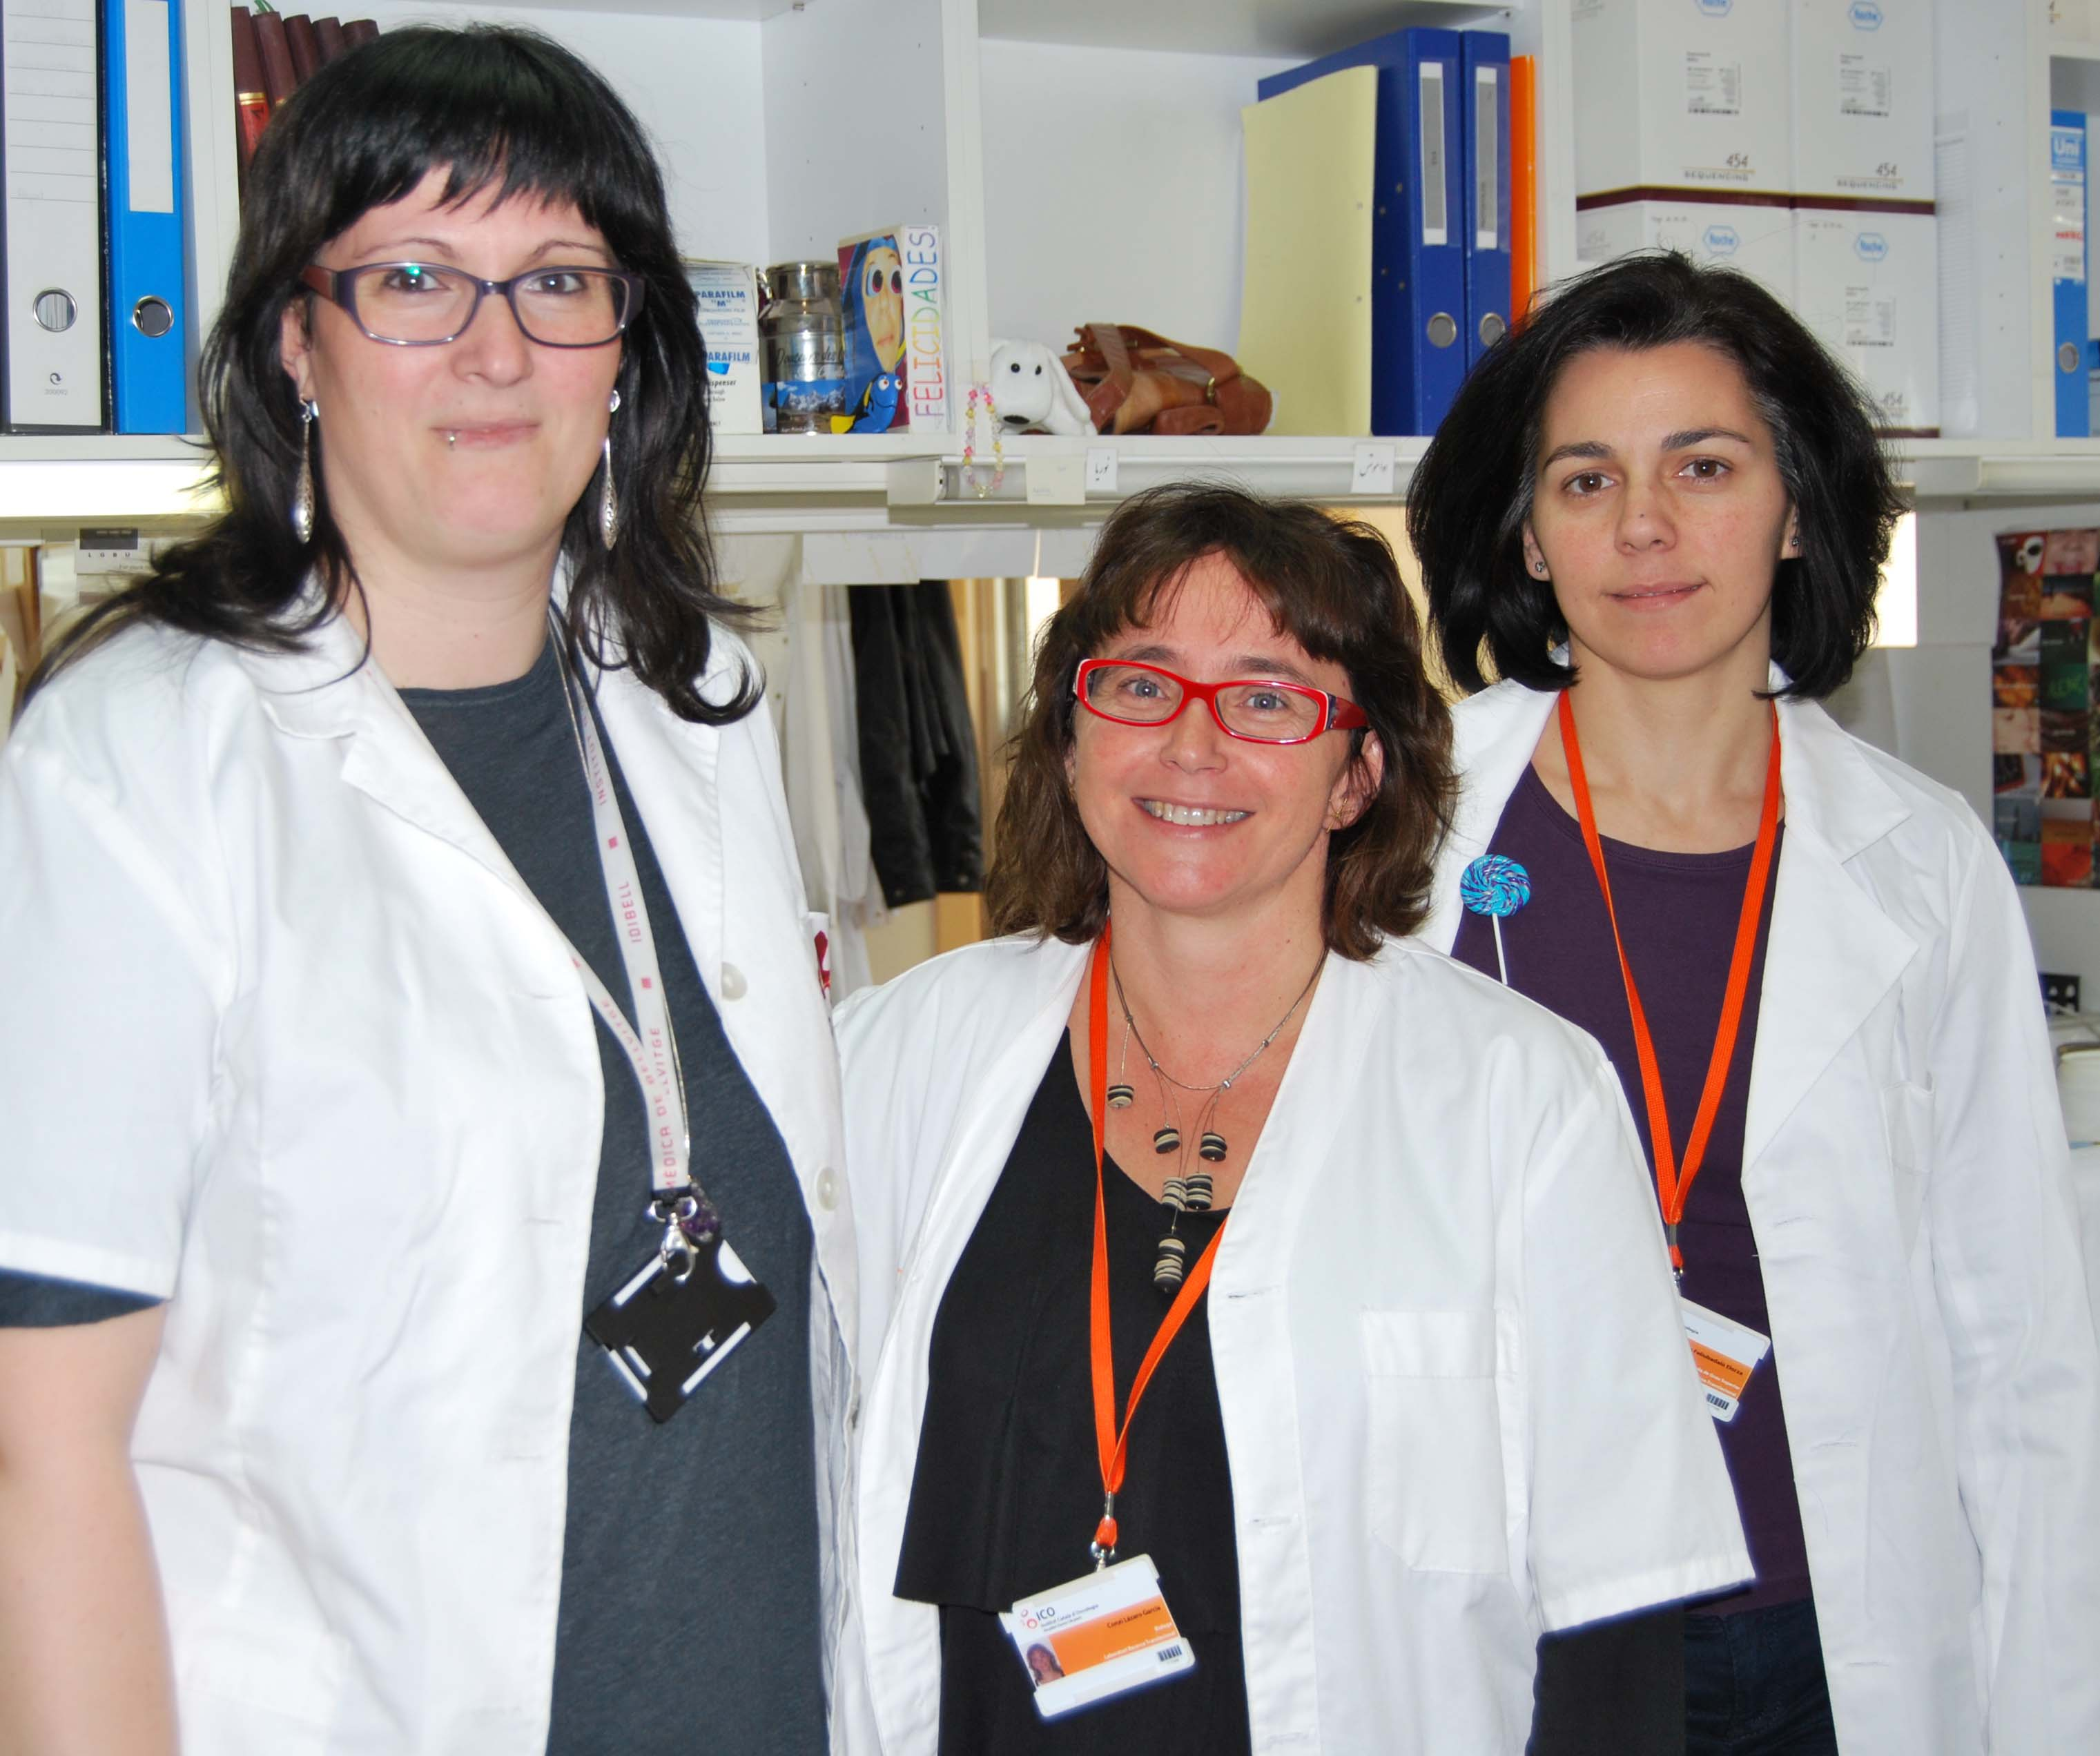 foto Researchers Juana Fern�ndez, Conxi L�zaro and L�dia Feliubadal�